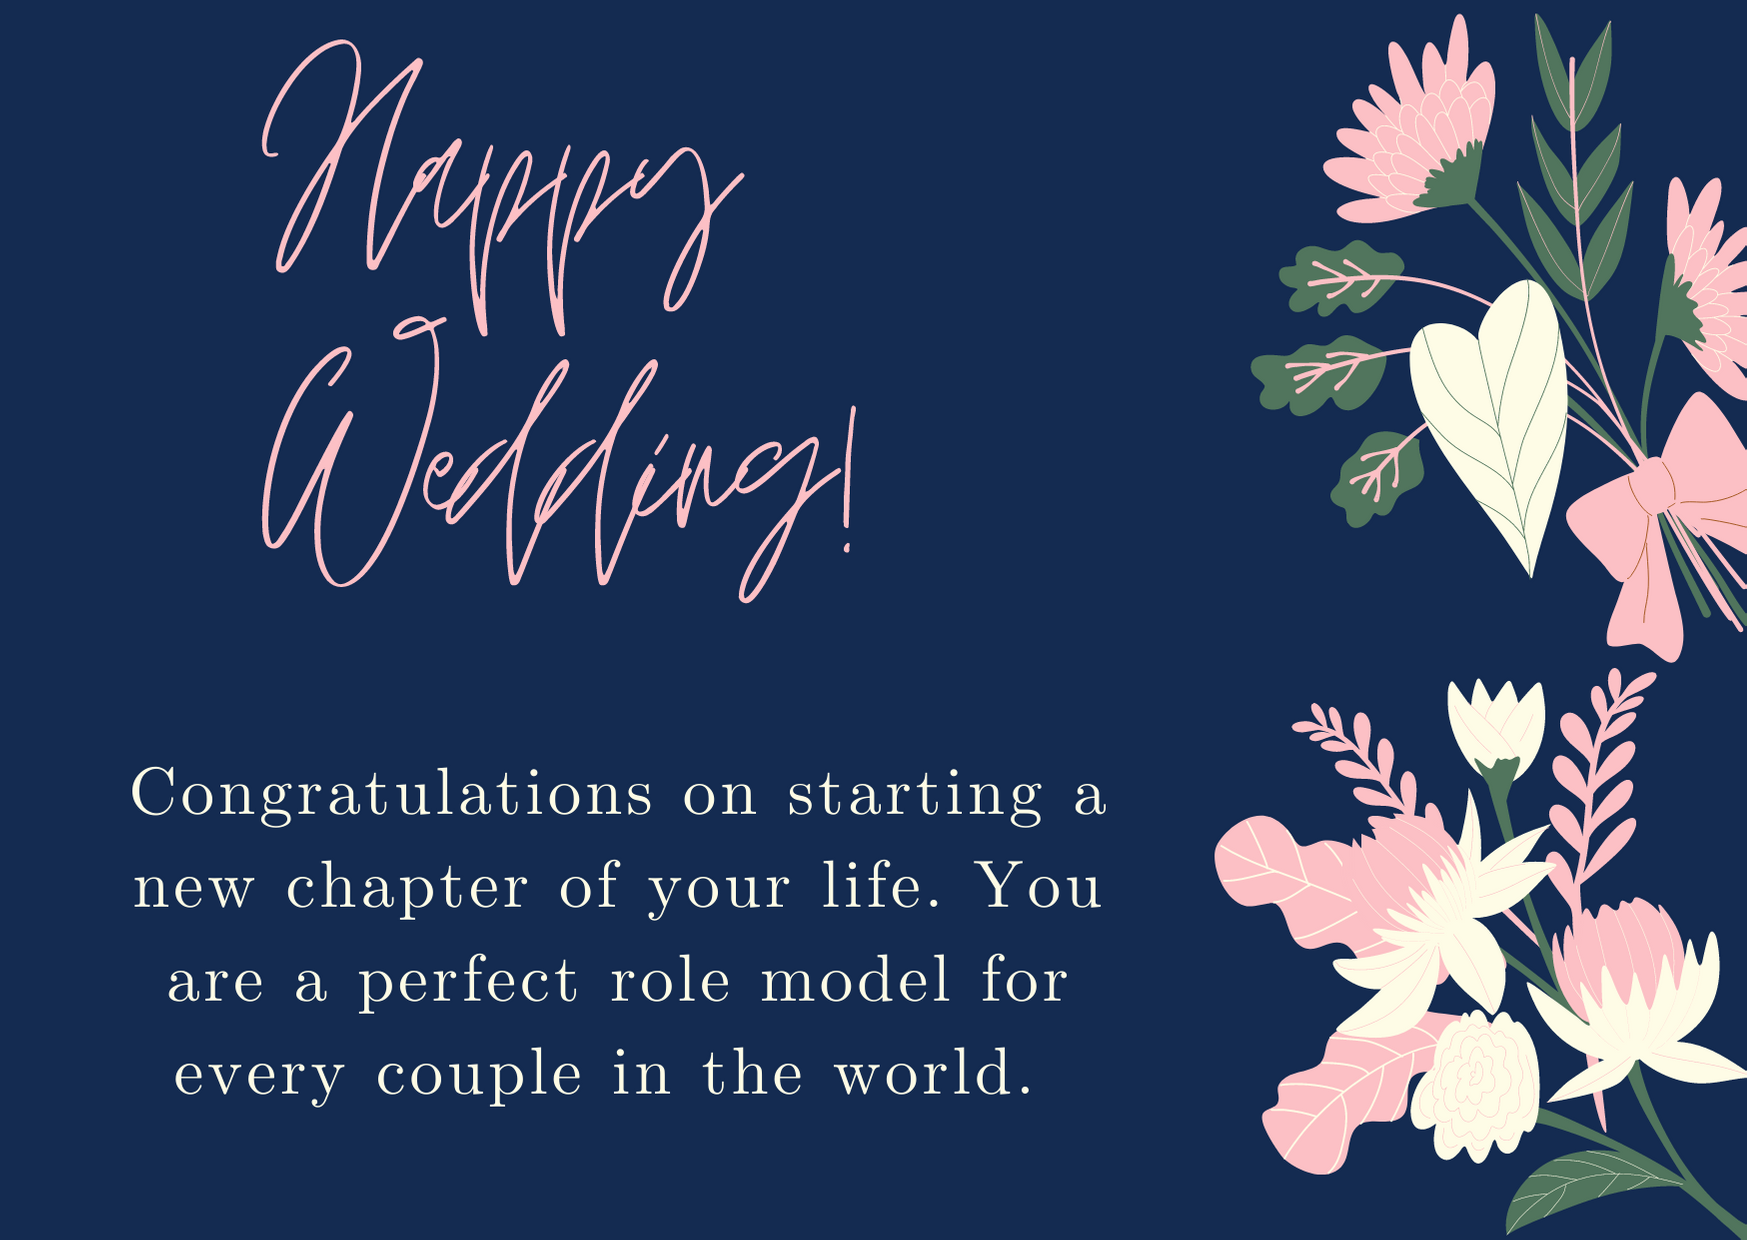 wishes for new marriage life